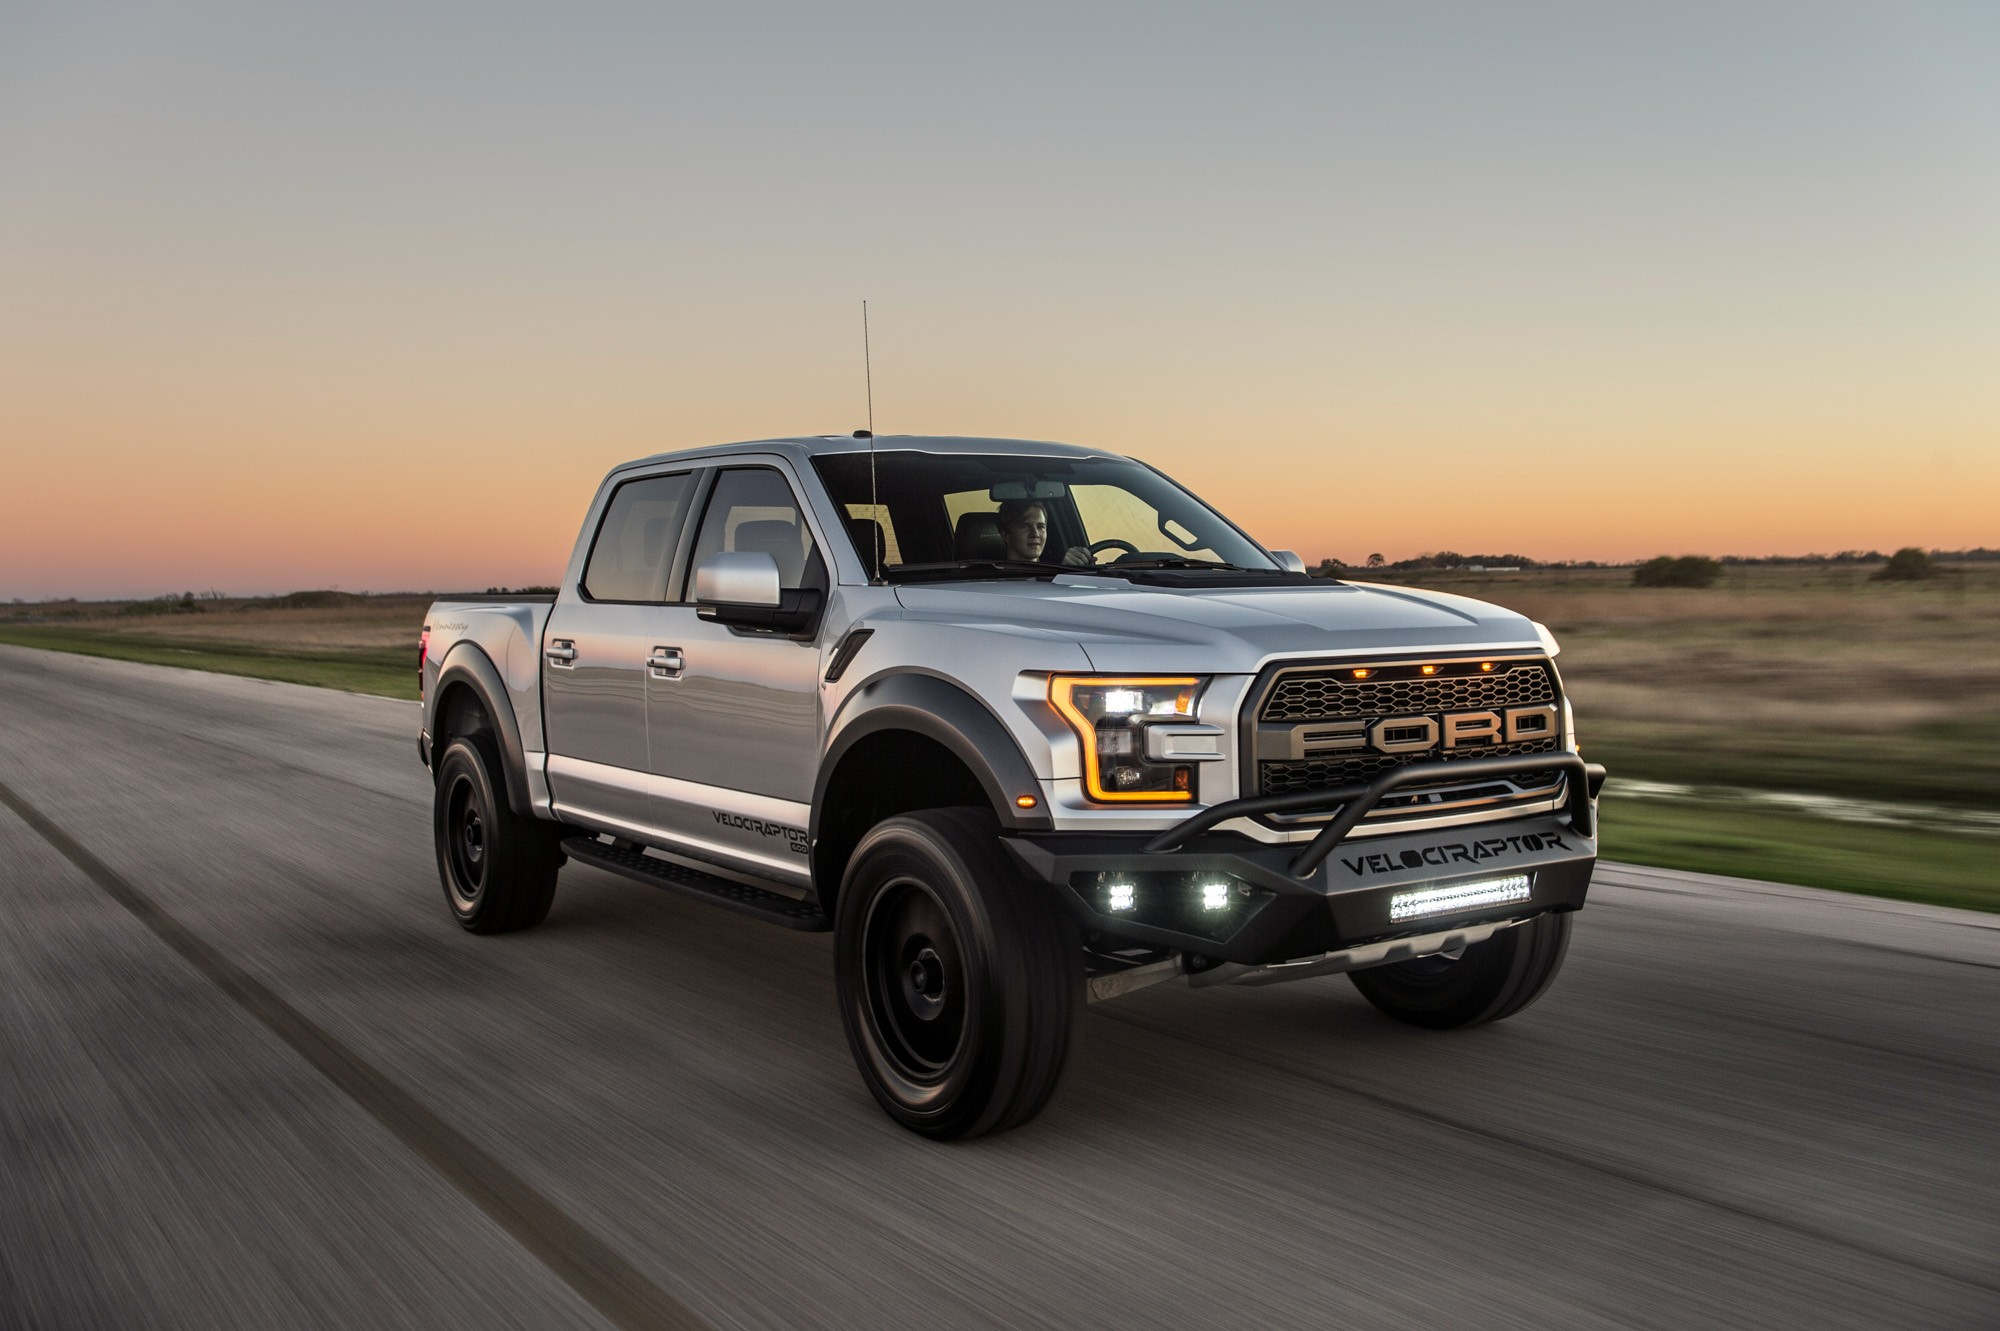 Hennessey Performance Tunes The 2017 Ford F-150 Raptor To ...